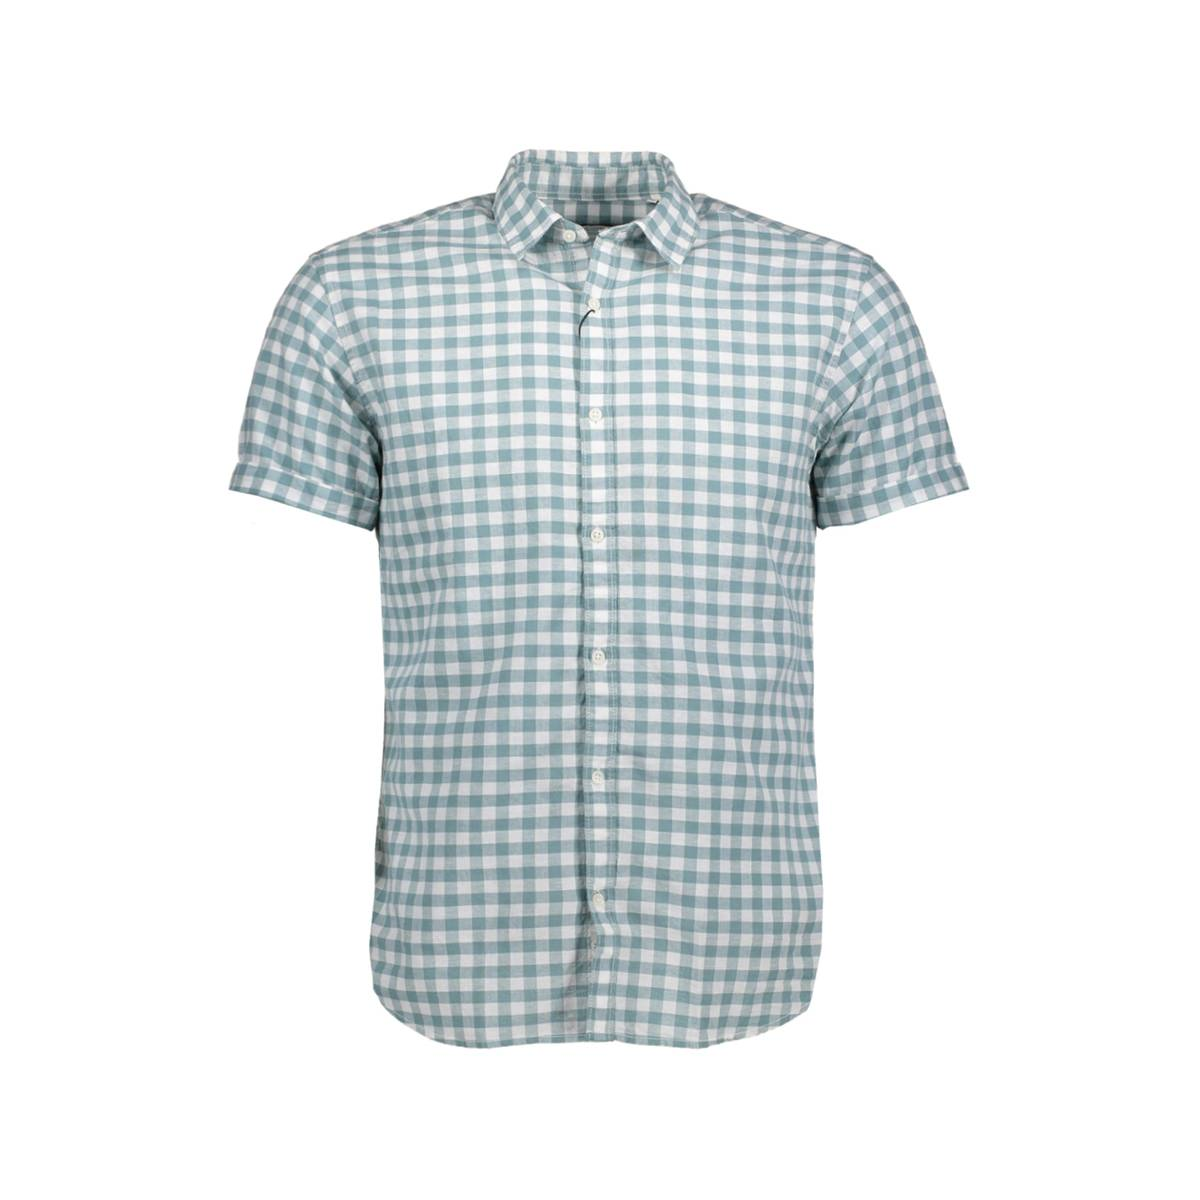 Jack & Jones Premium JPRSUMMER CHECK SHIRT SS Groen